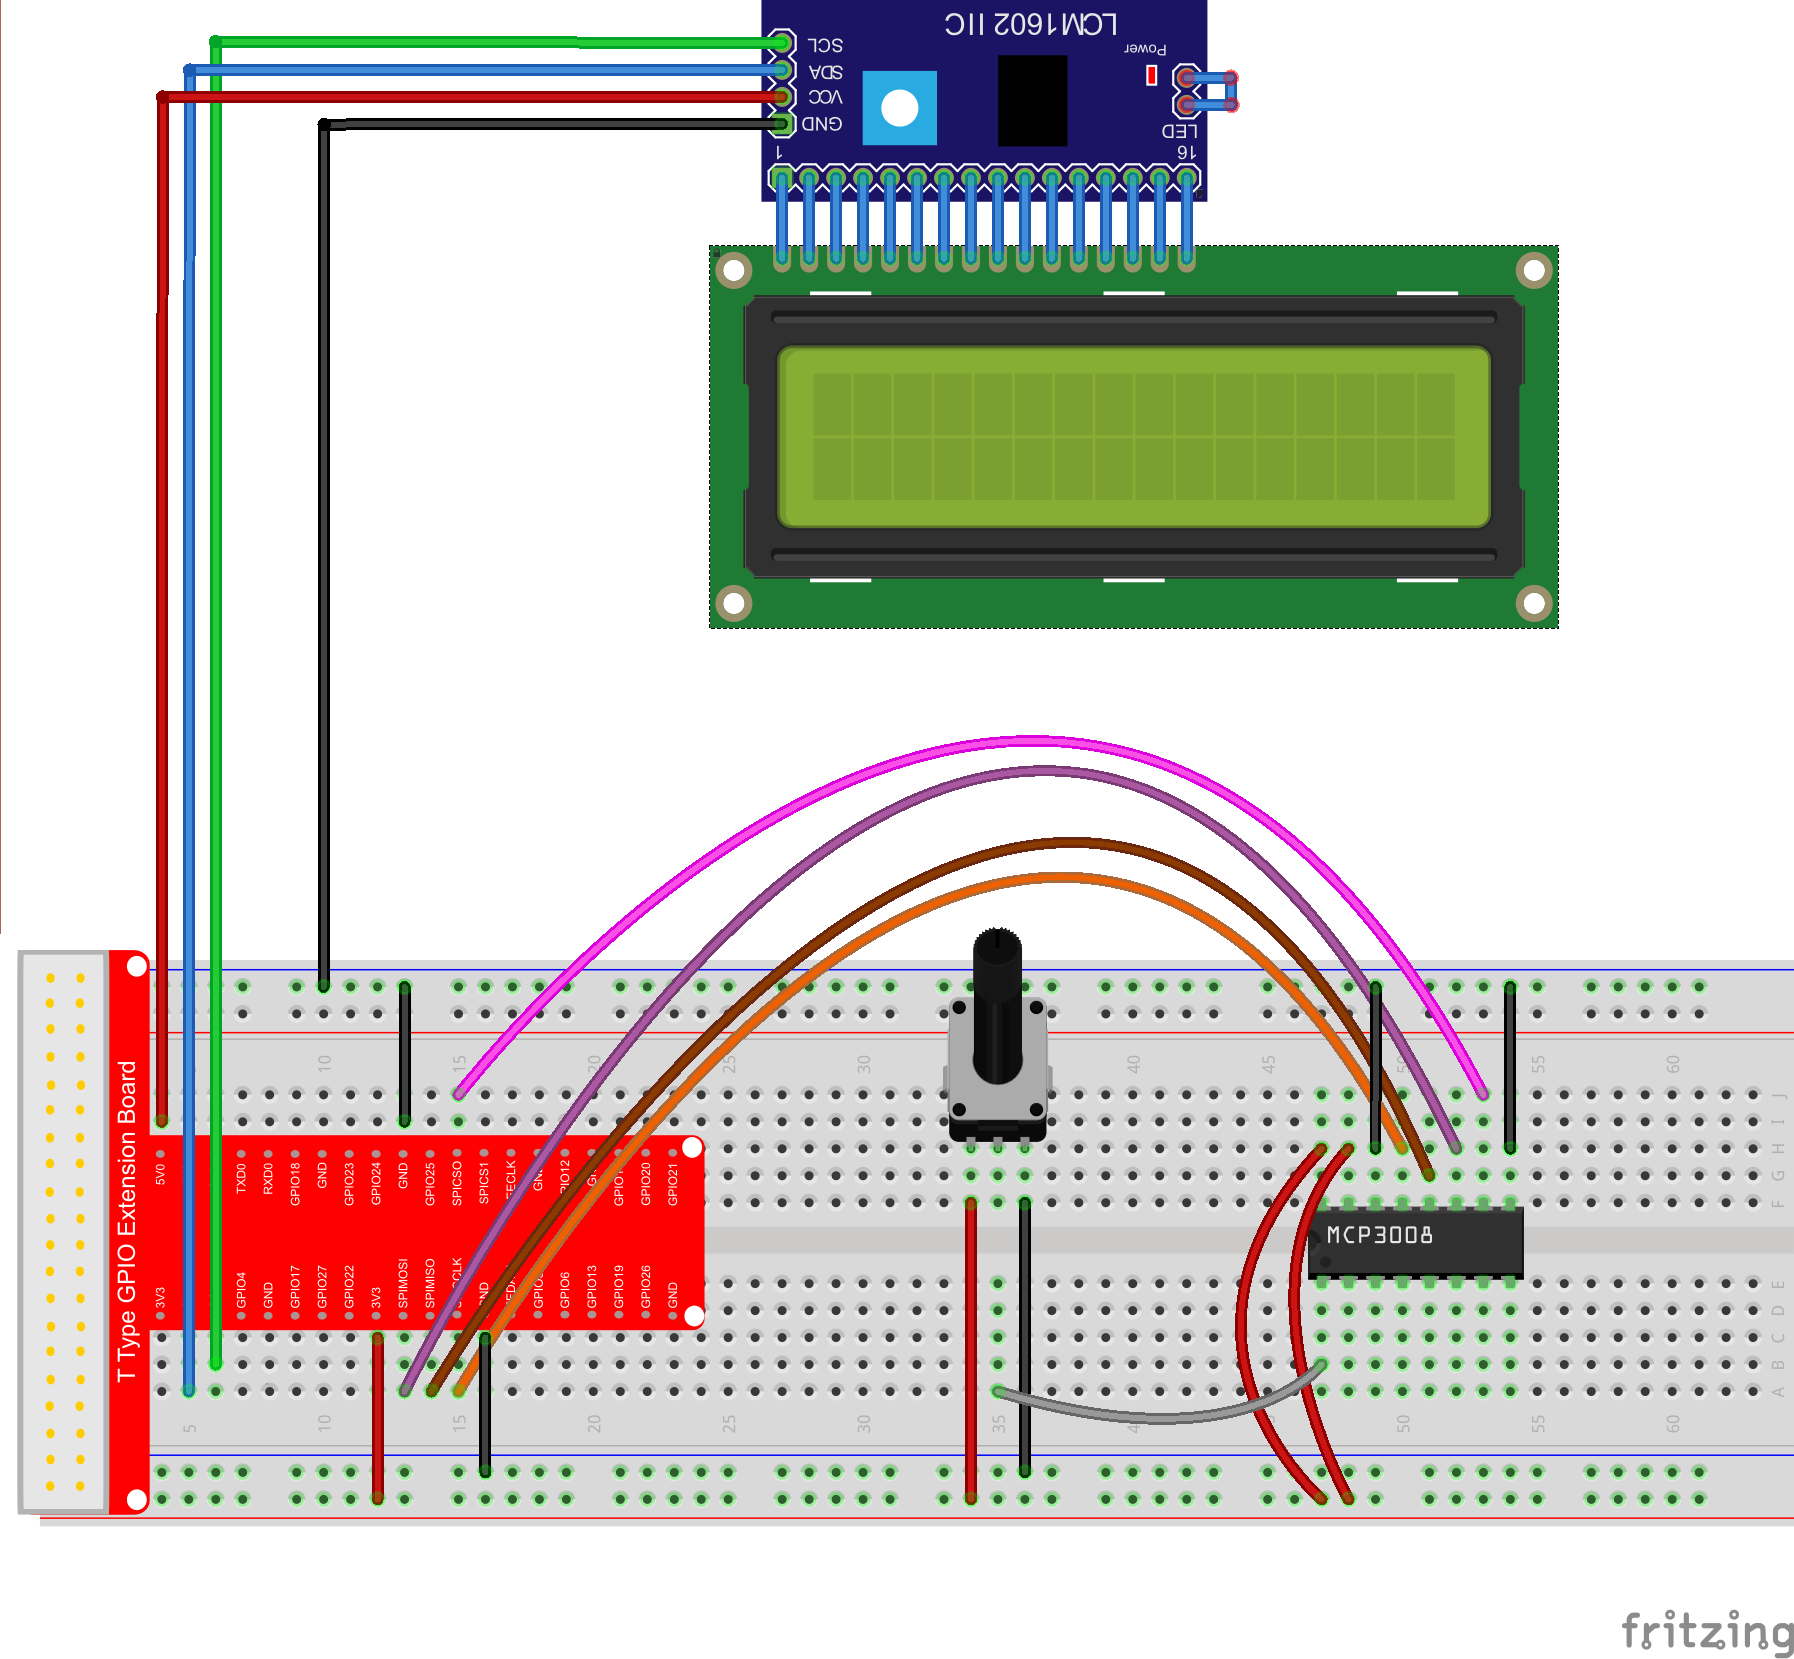 Raspberry Pi Starter Kit Lesson 15 Potentiometer And 2 Wiringpi I2c In This Project Well Wire Up The With An External Mcp3008 Adc Measure Analog Value Via That Then Display Voltage On 1602 Lcdthe